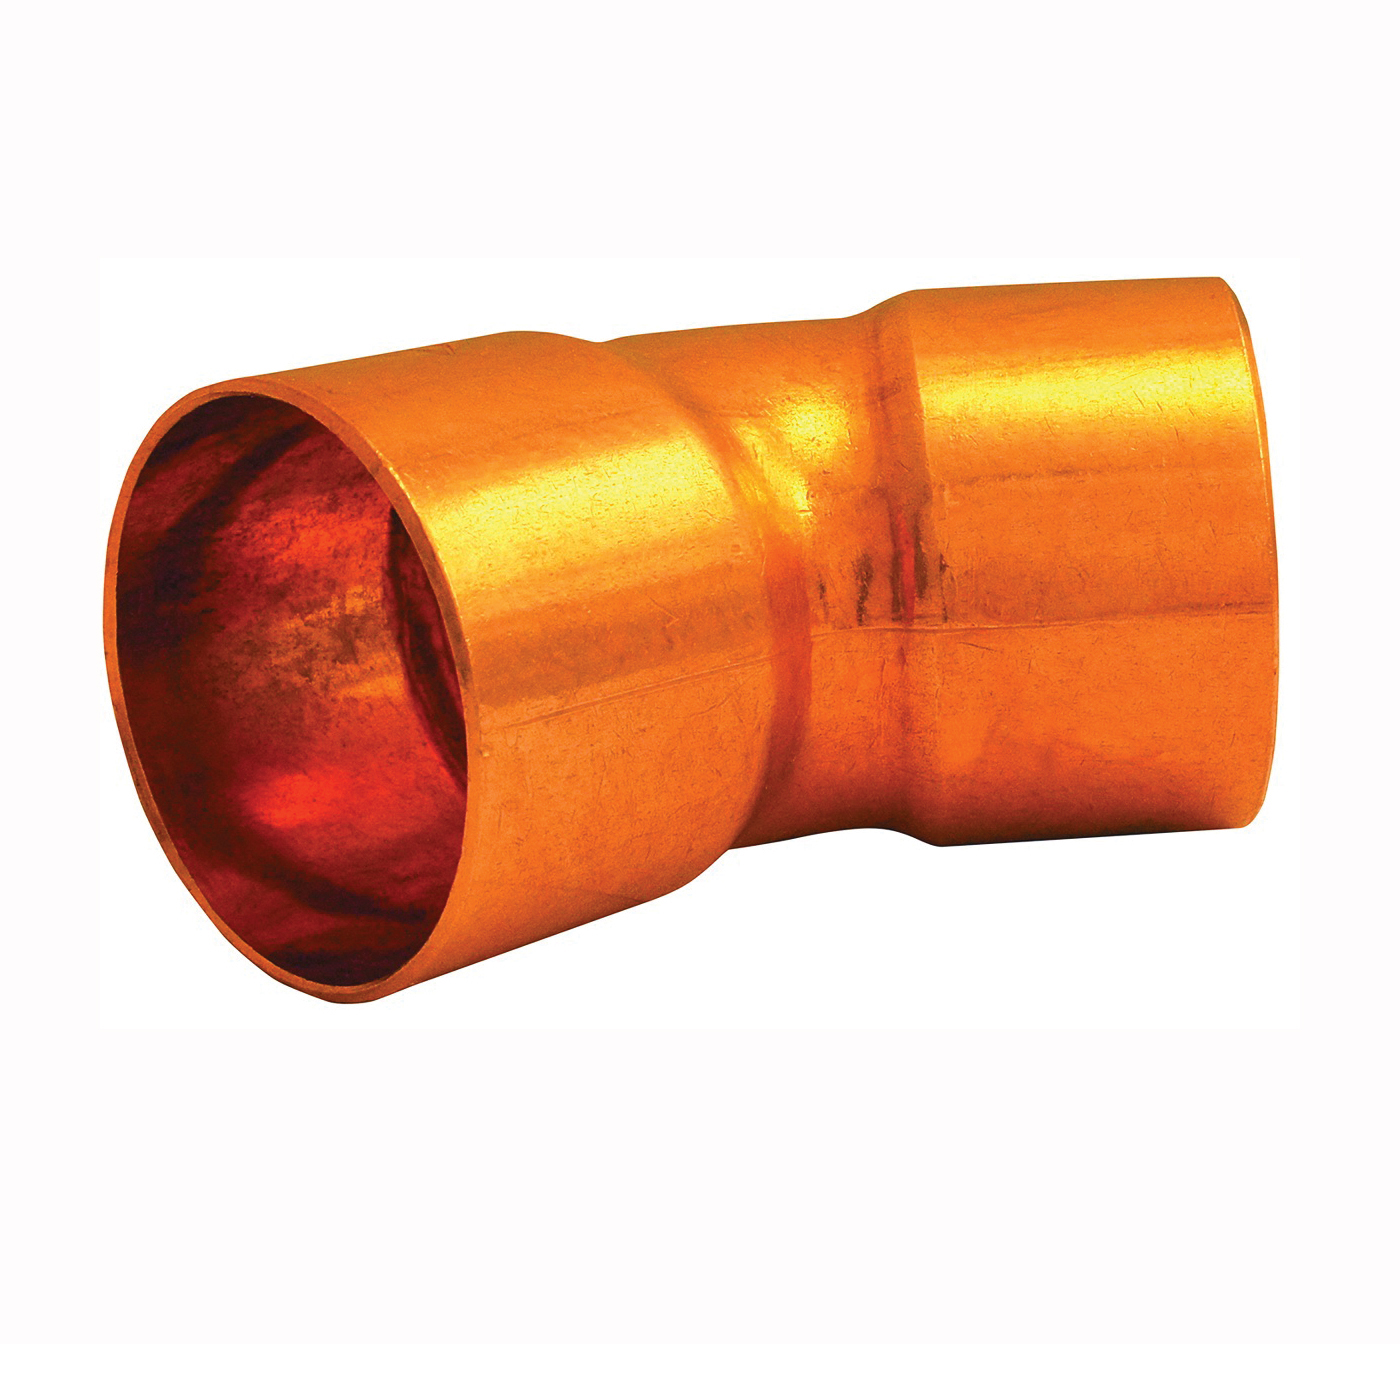 Picture of EPC 31090 Pipe Elbow, 3/8 in, Compression, 45 deg Angle, Wrot Copper